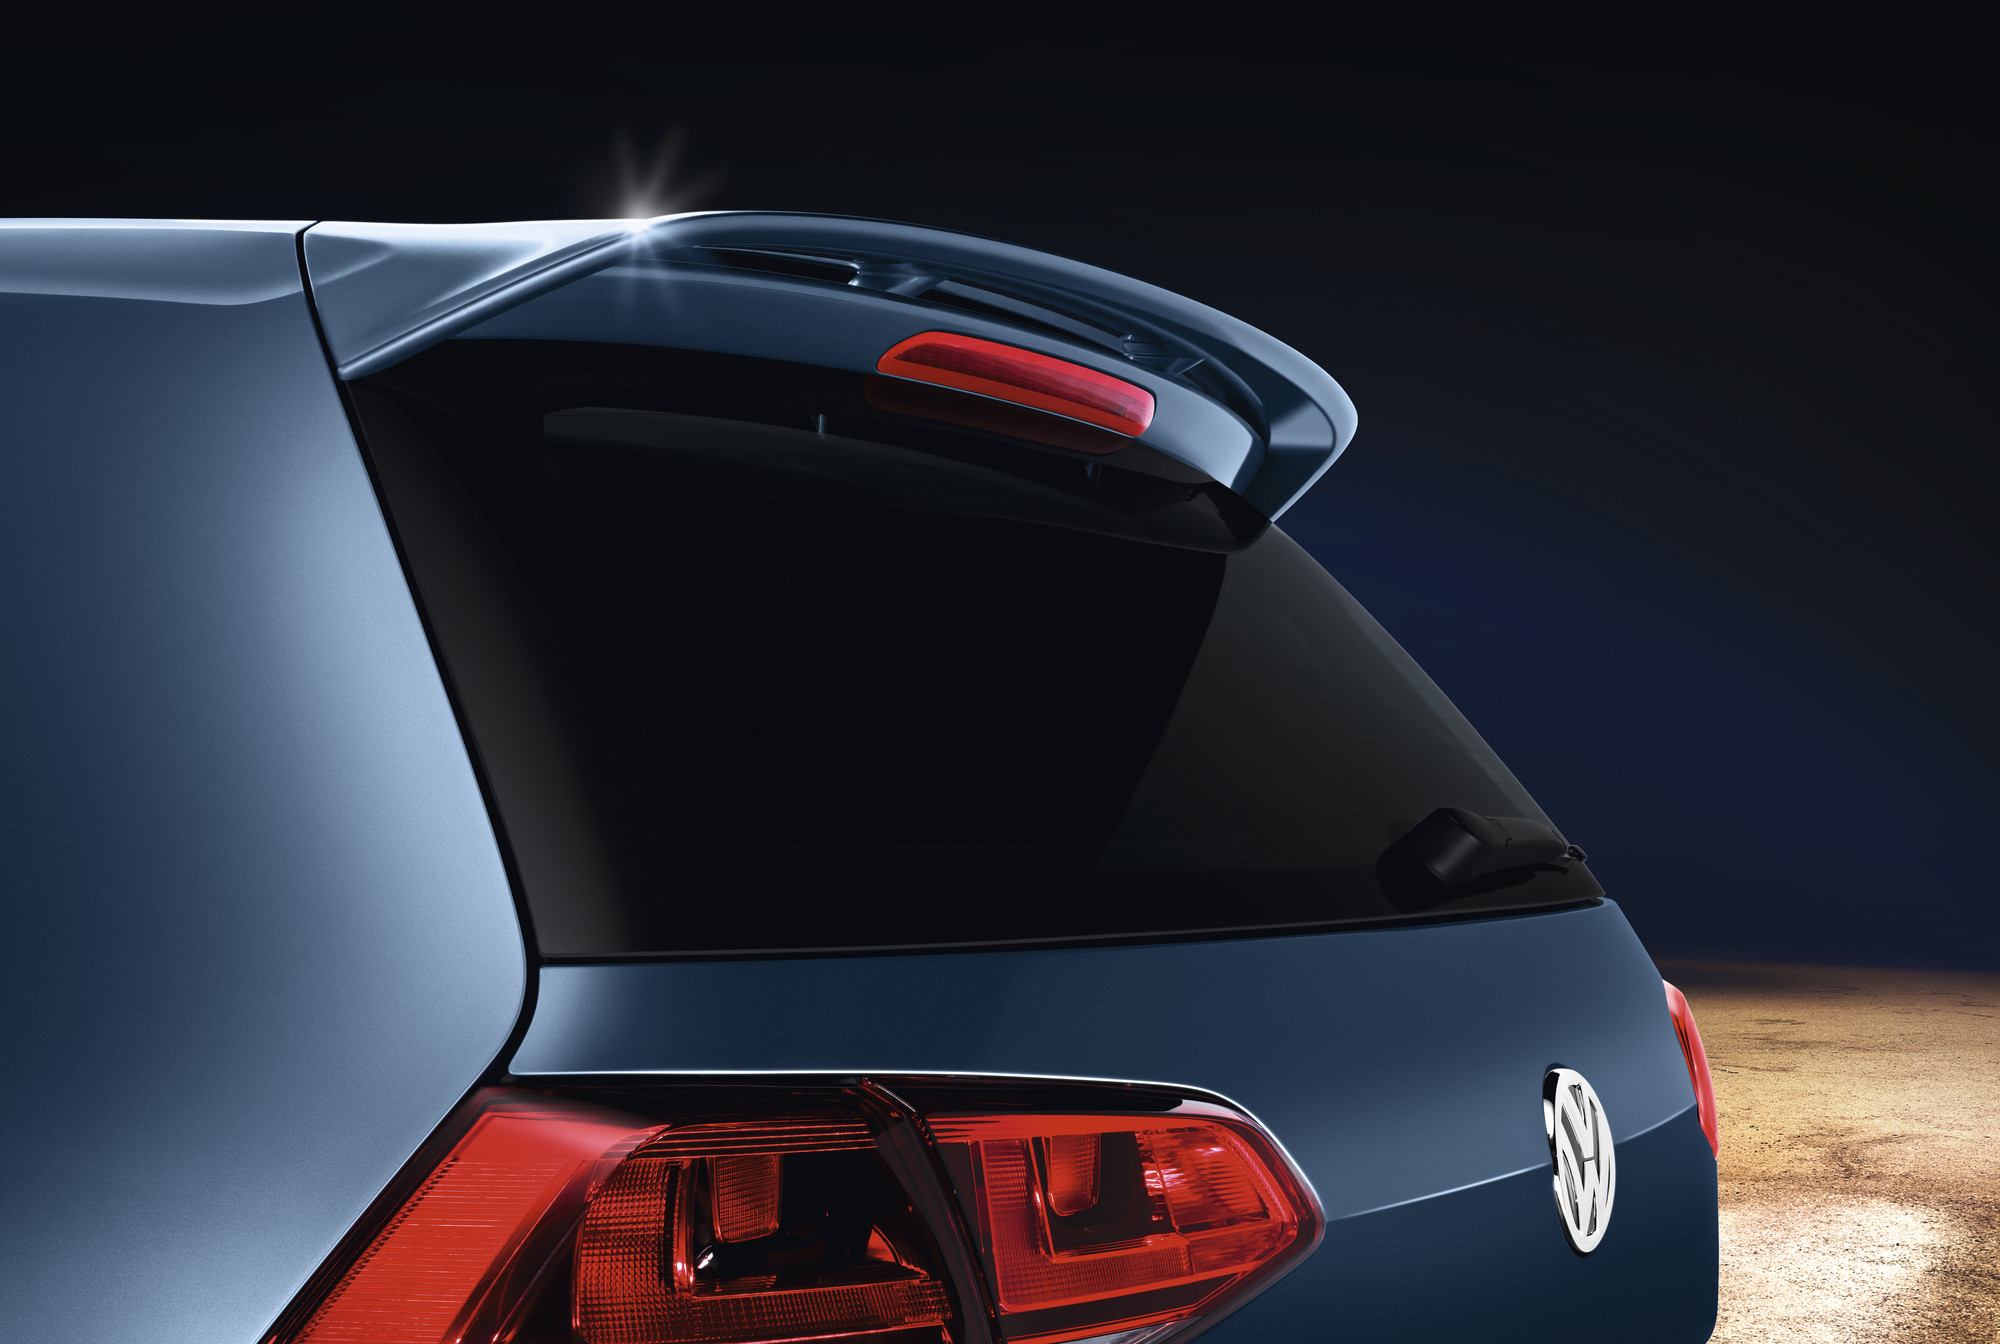 roof spoiler page 9 golfmk7 vw gti mkvii forum vw. Black Bedroom Furniture Sets. Home Design Ideas